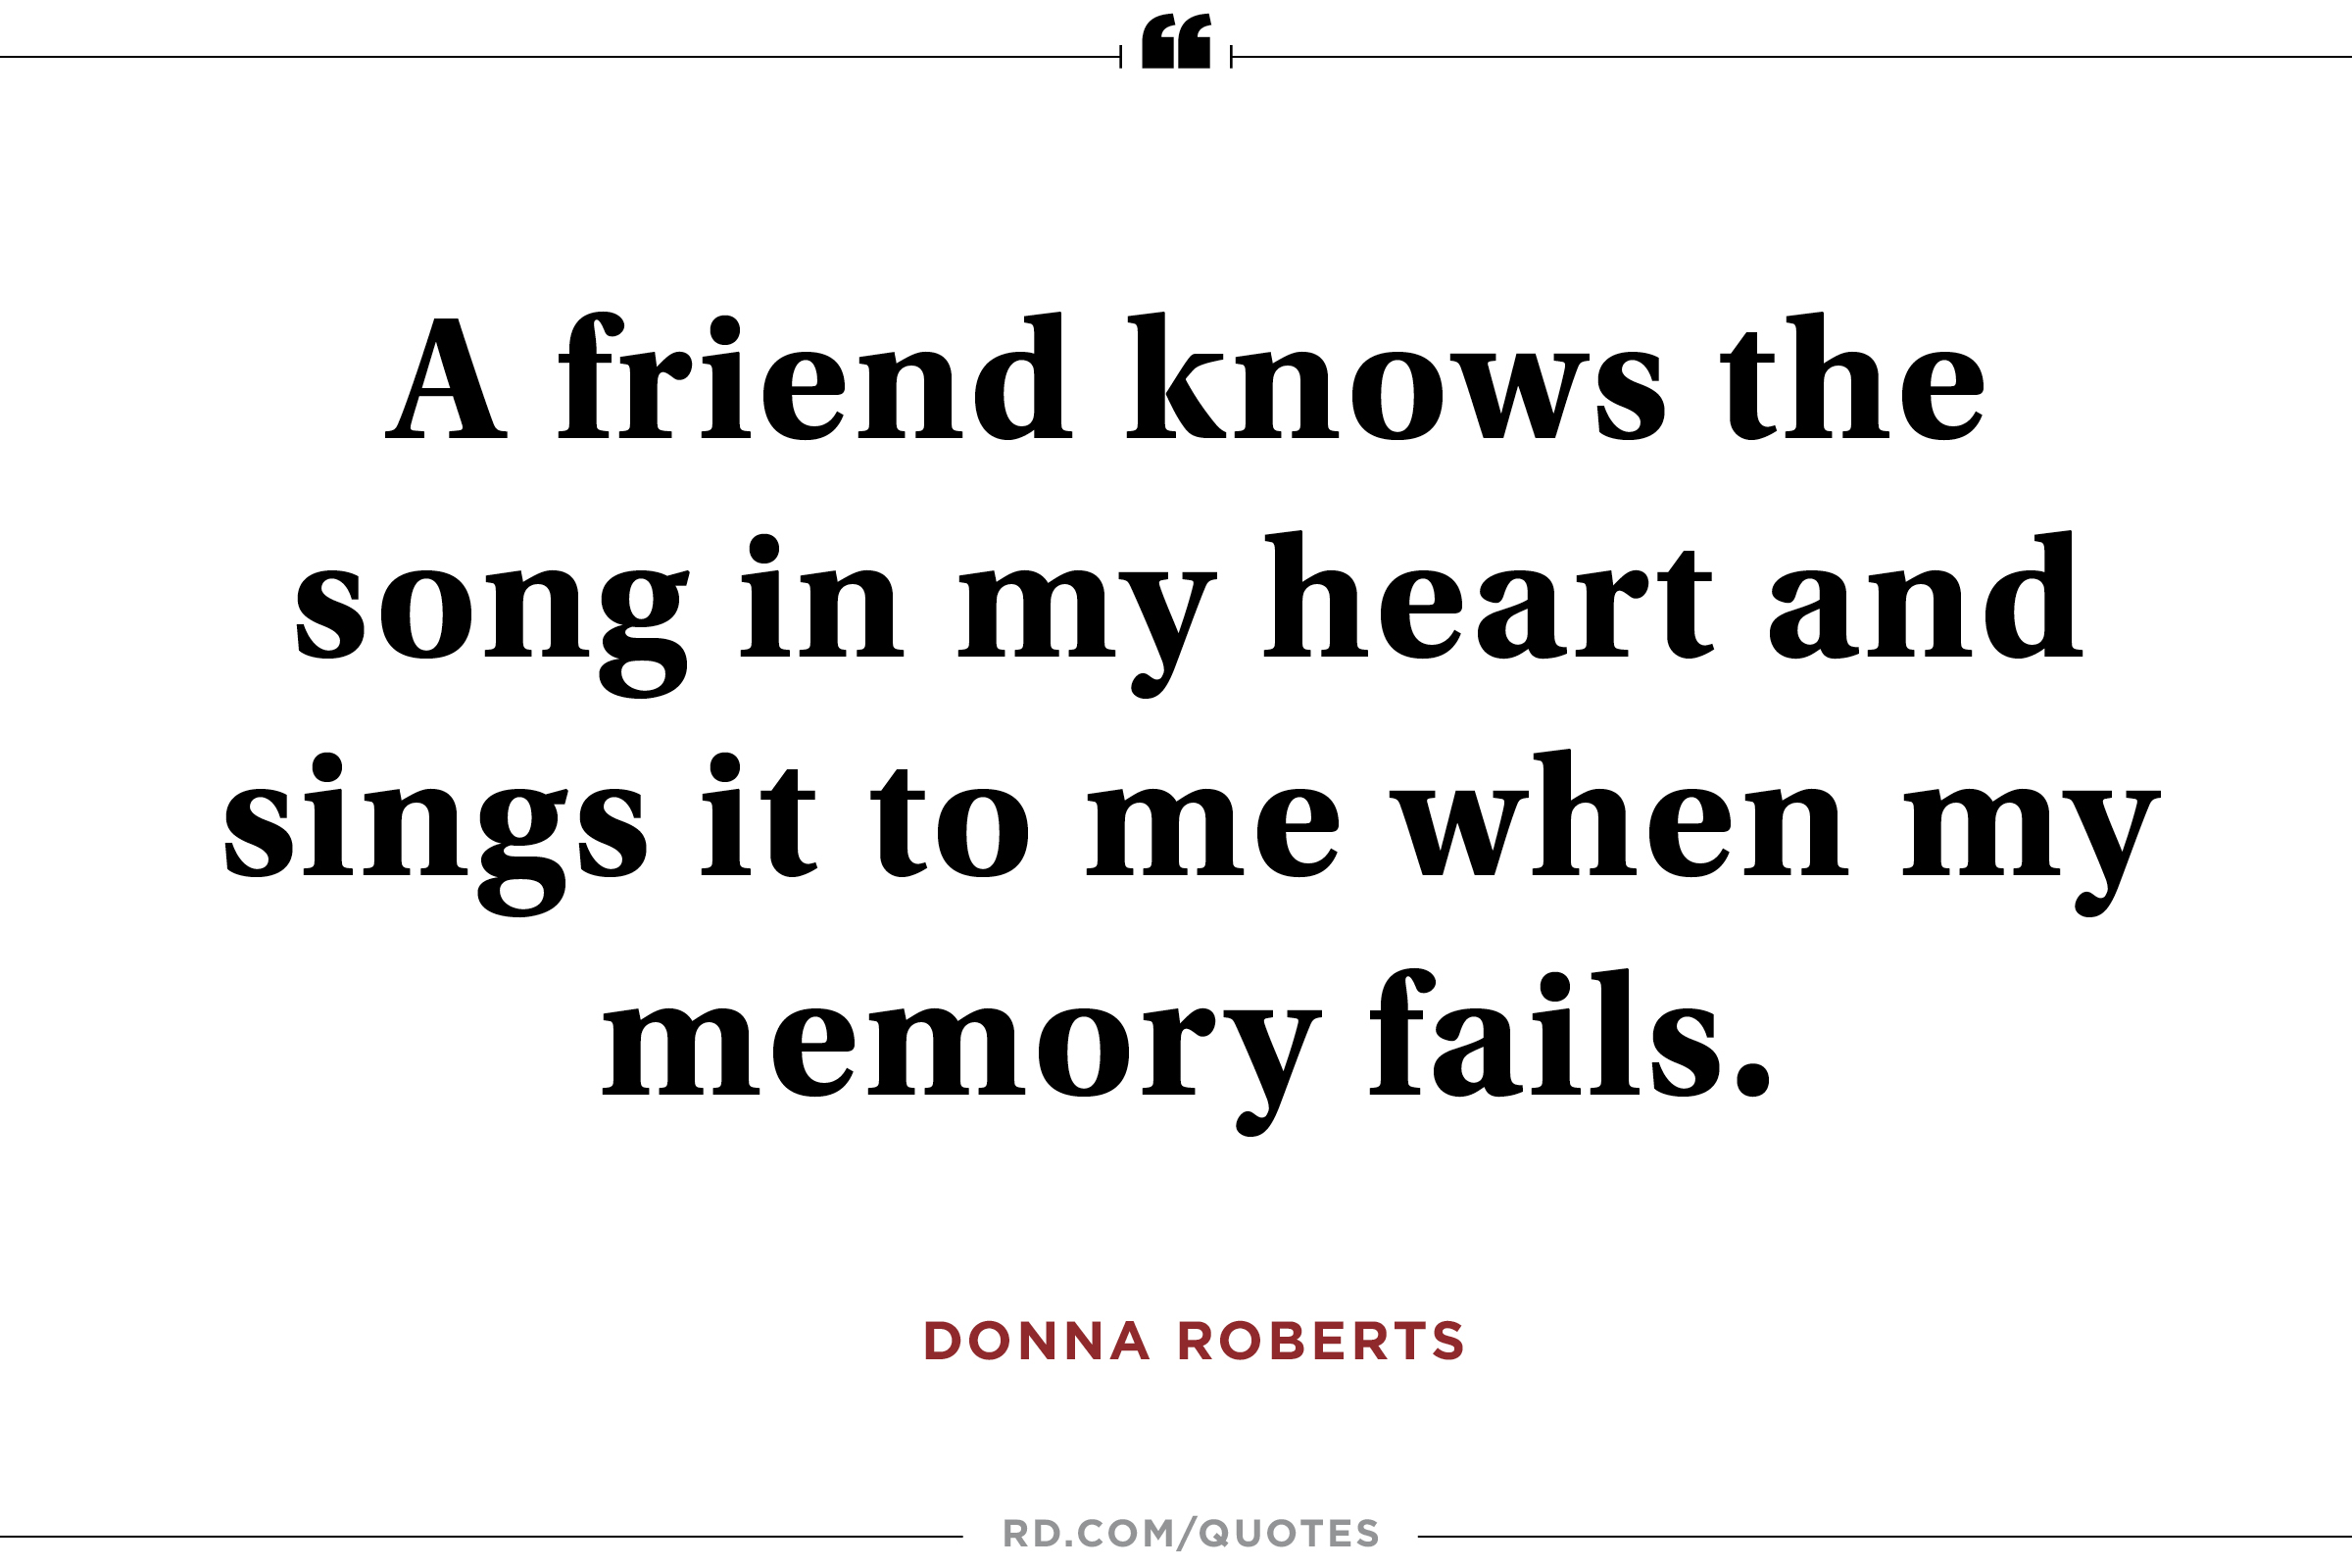 A friend knows the song in my heart and sings it to me when my memory fails. Donna Roberts